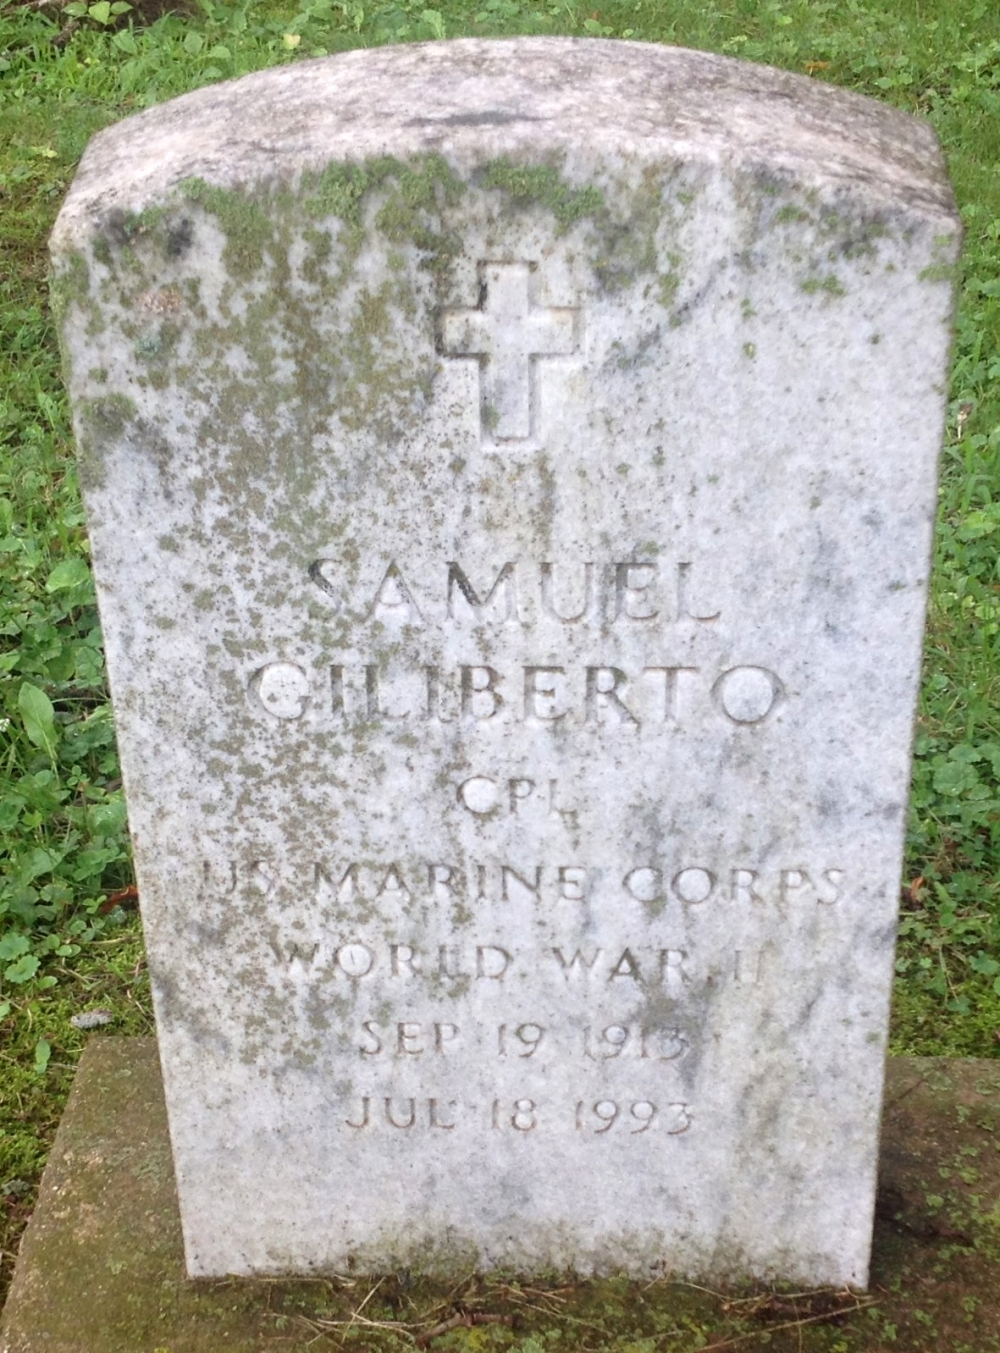 Samuel Giliberto September 19, 1913 - July 18, 1993 Grave Marker